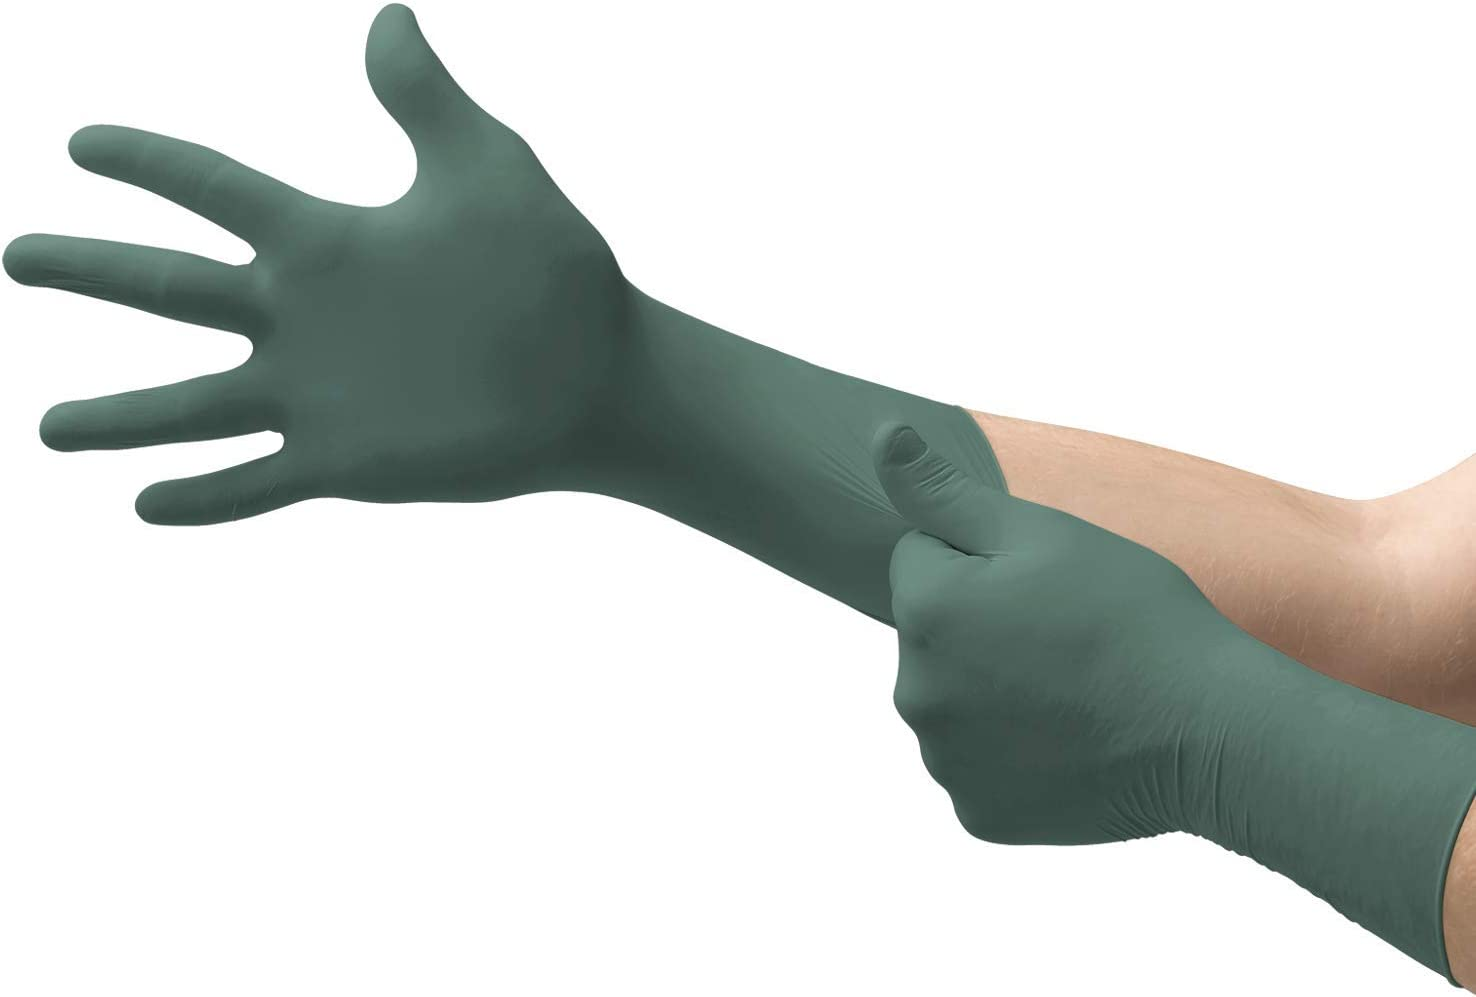 Microflex Dura Flock Flock-Lined Max New arrival 40% OFF Large Gloves